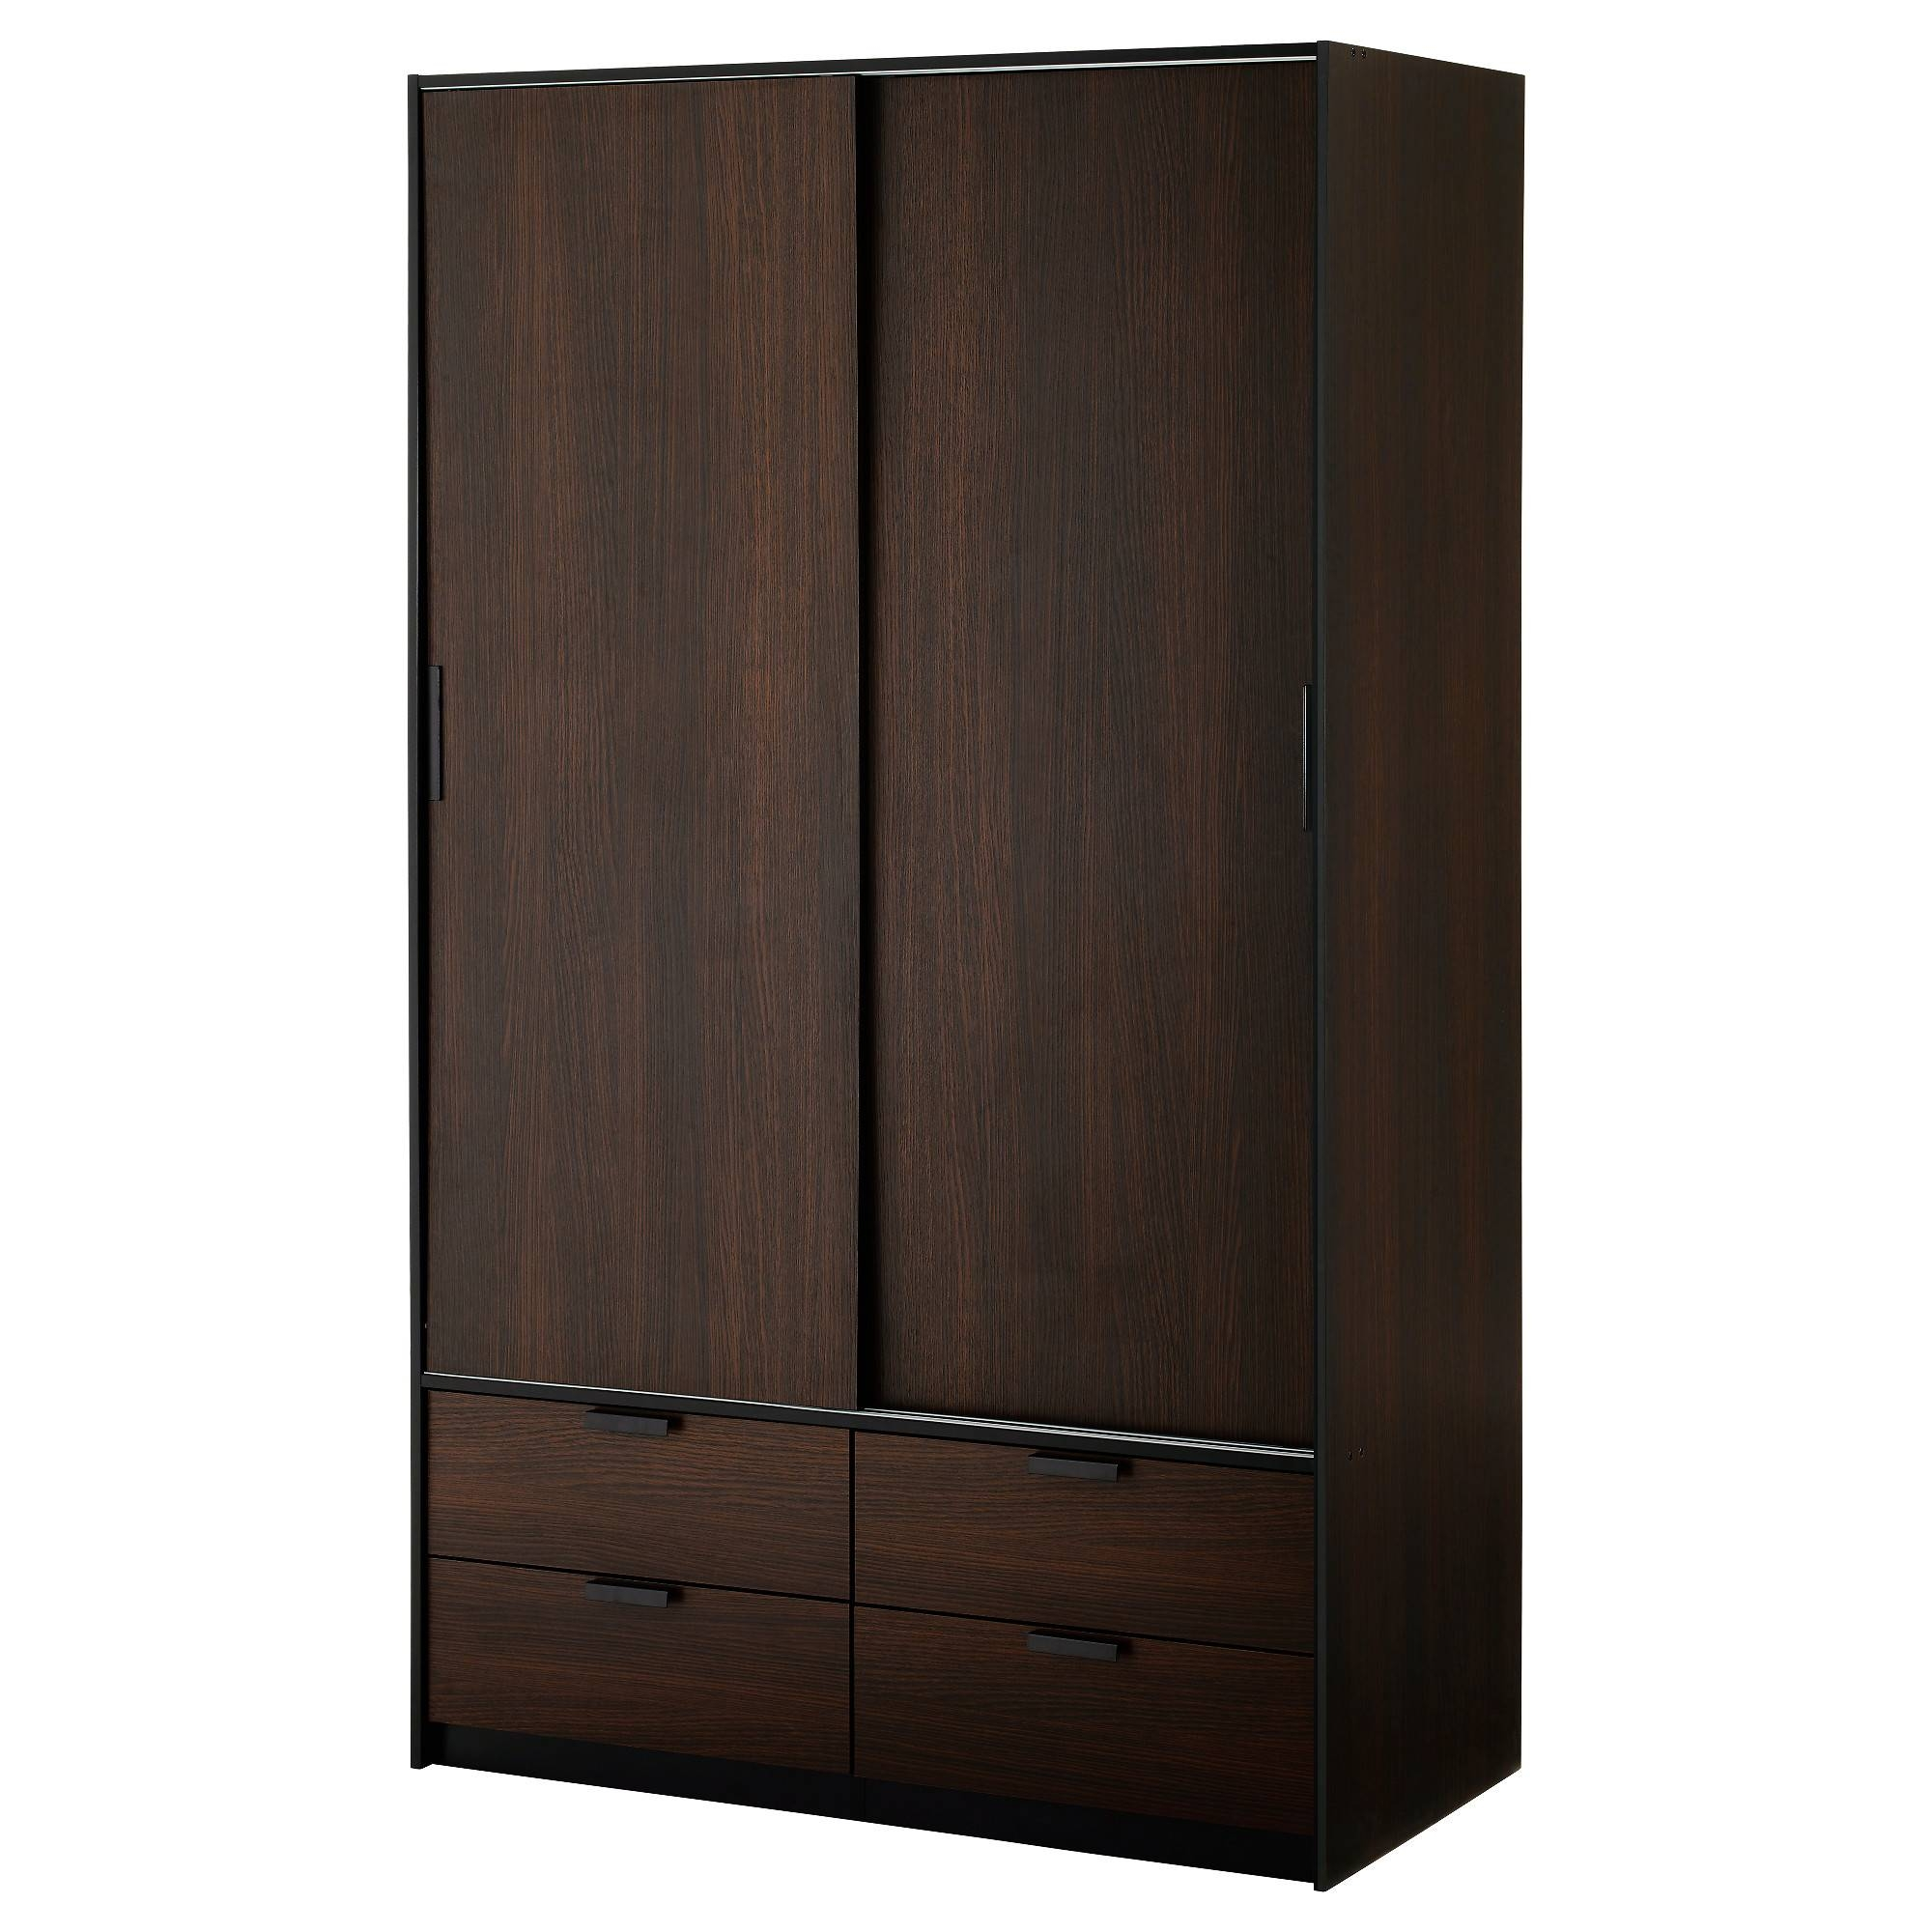 Wardrobes | Ikea Ireland - Dublin throughout Dark Wood Wardrobes (Image 27 of 30)